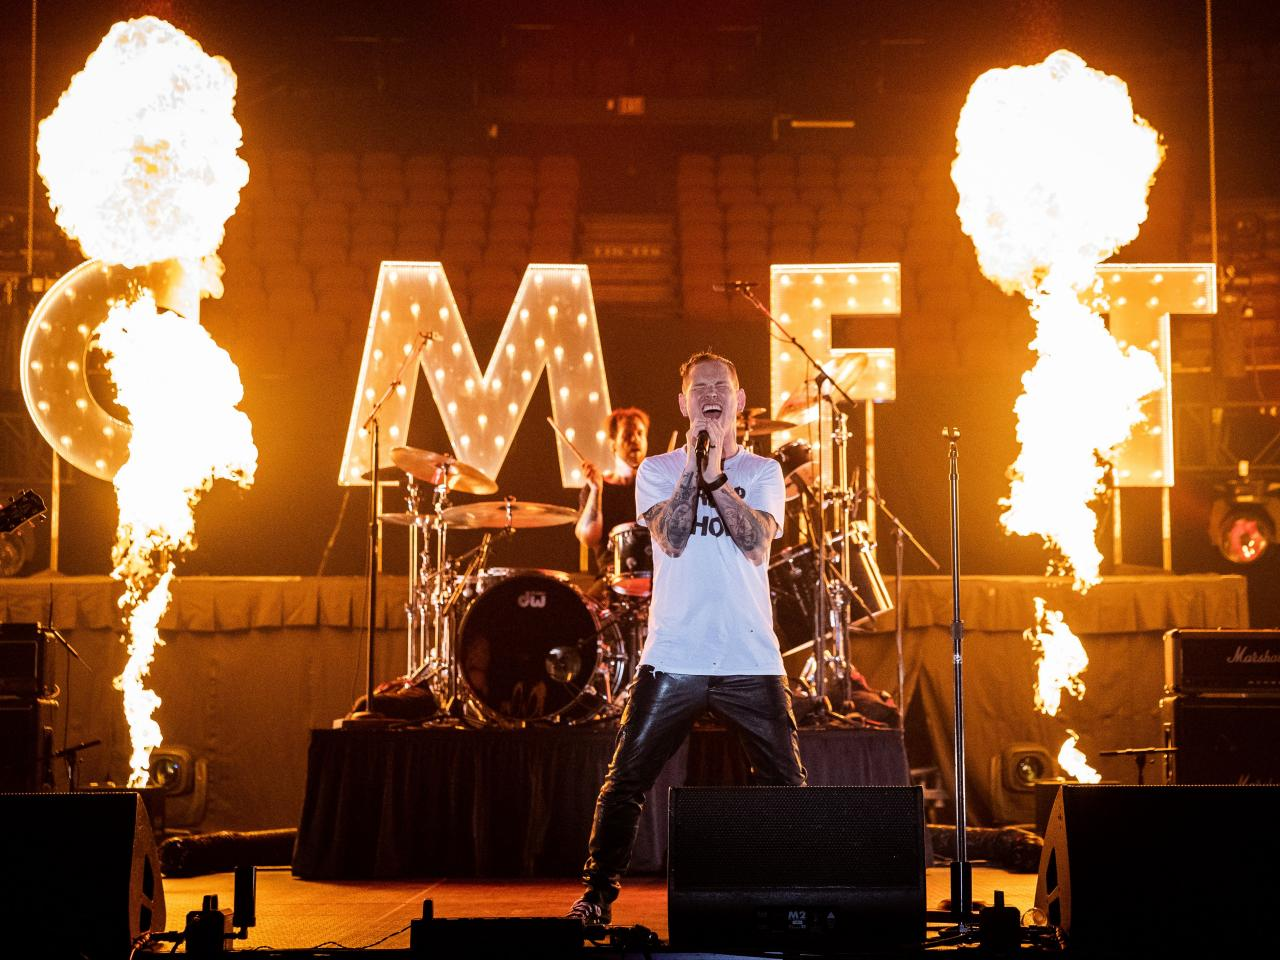 Corey Taylor @ The Forum, Los Angeles, 2-10-2020. Foto door Steve Thrasher